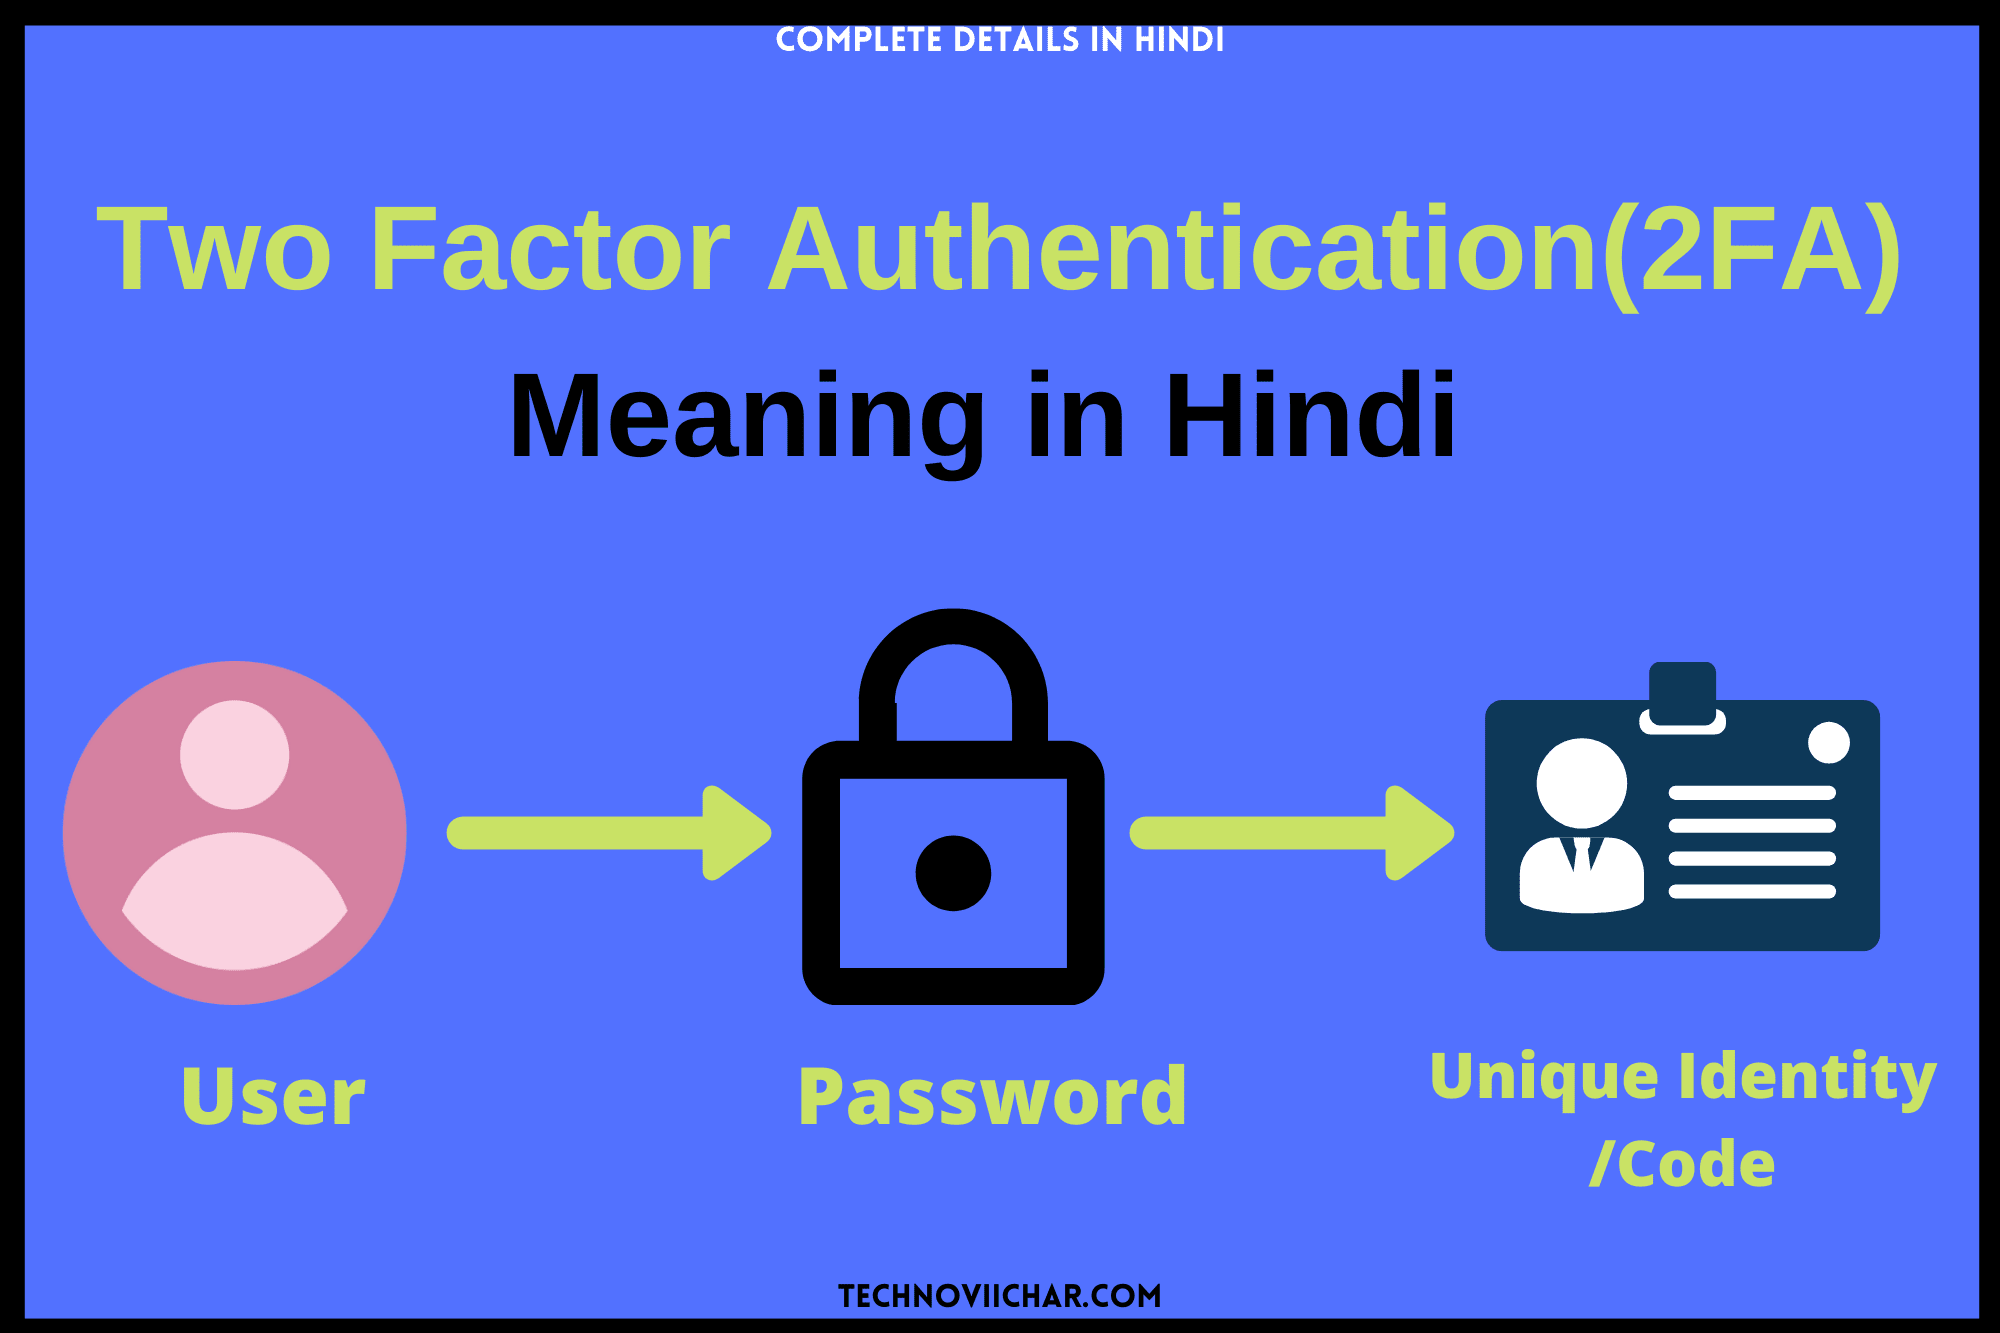 Two_Factor_Authentication_Meaning_in_Hindi